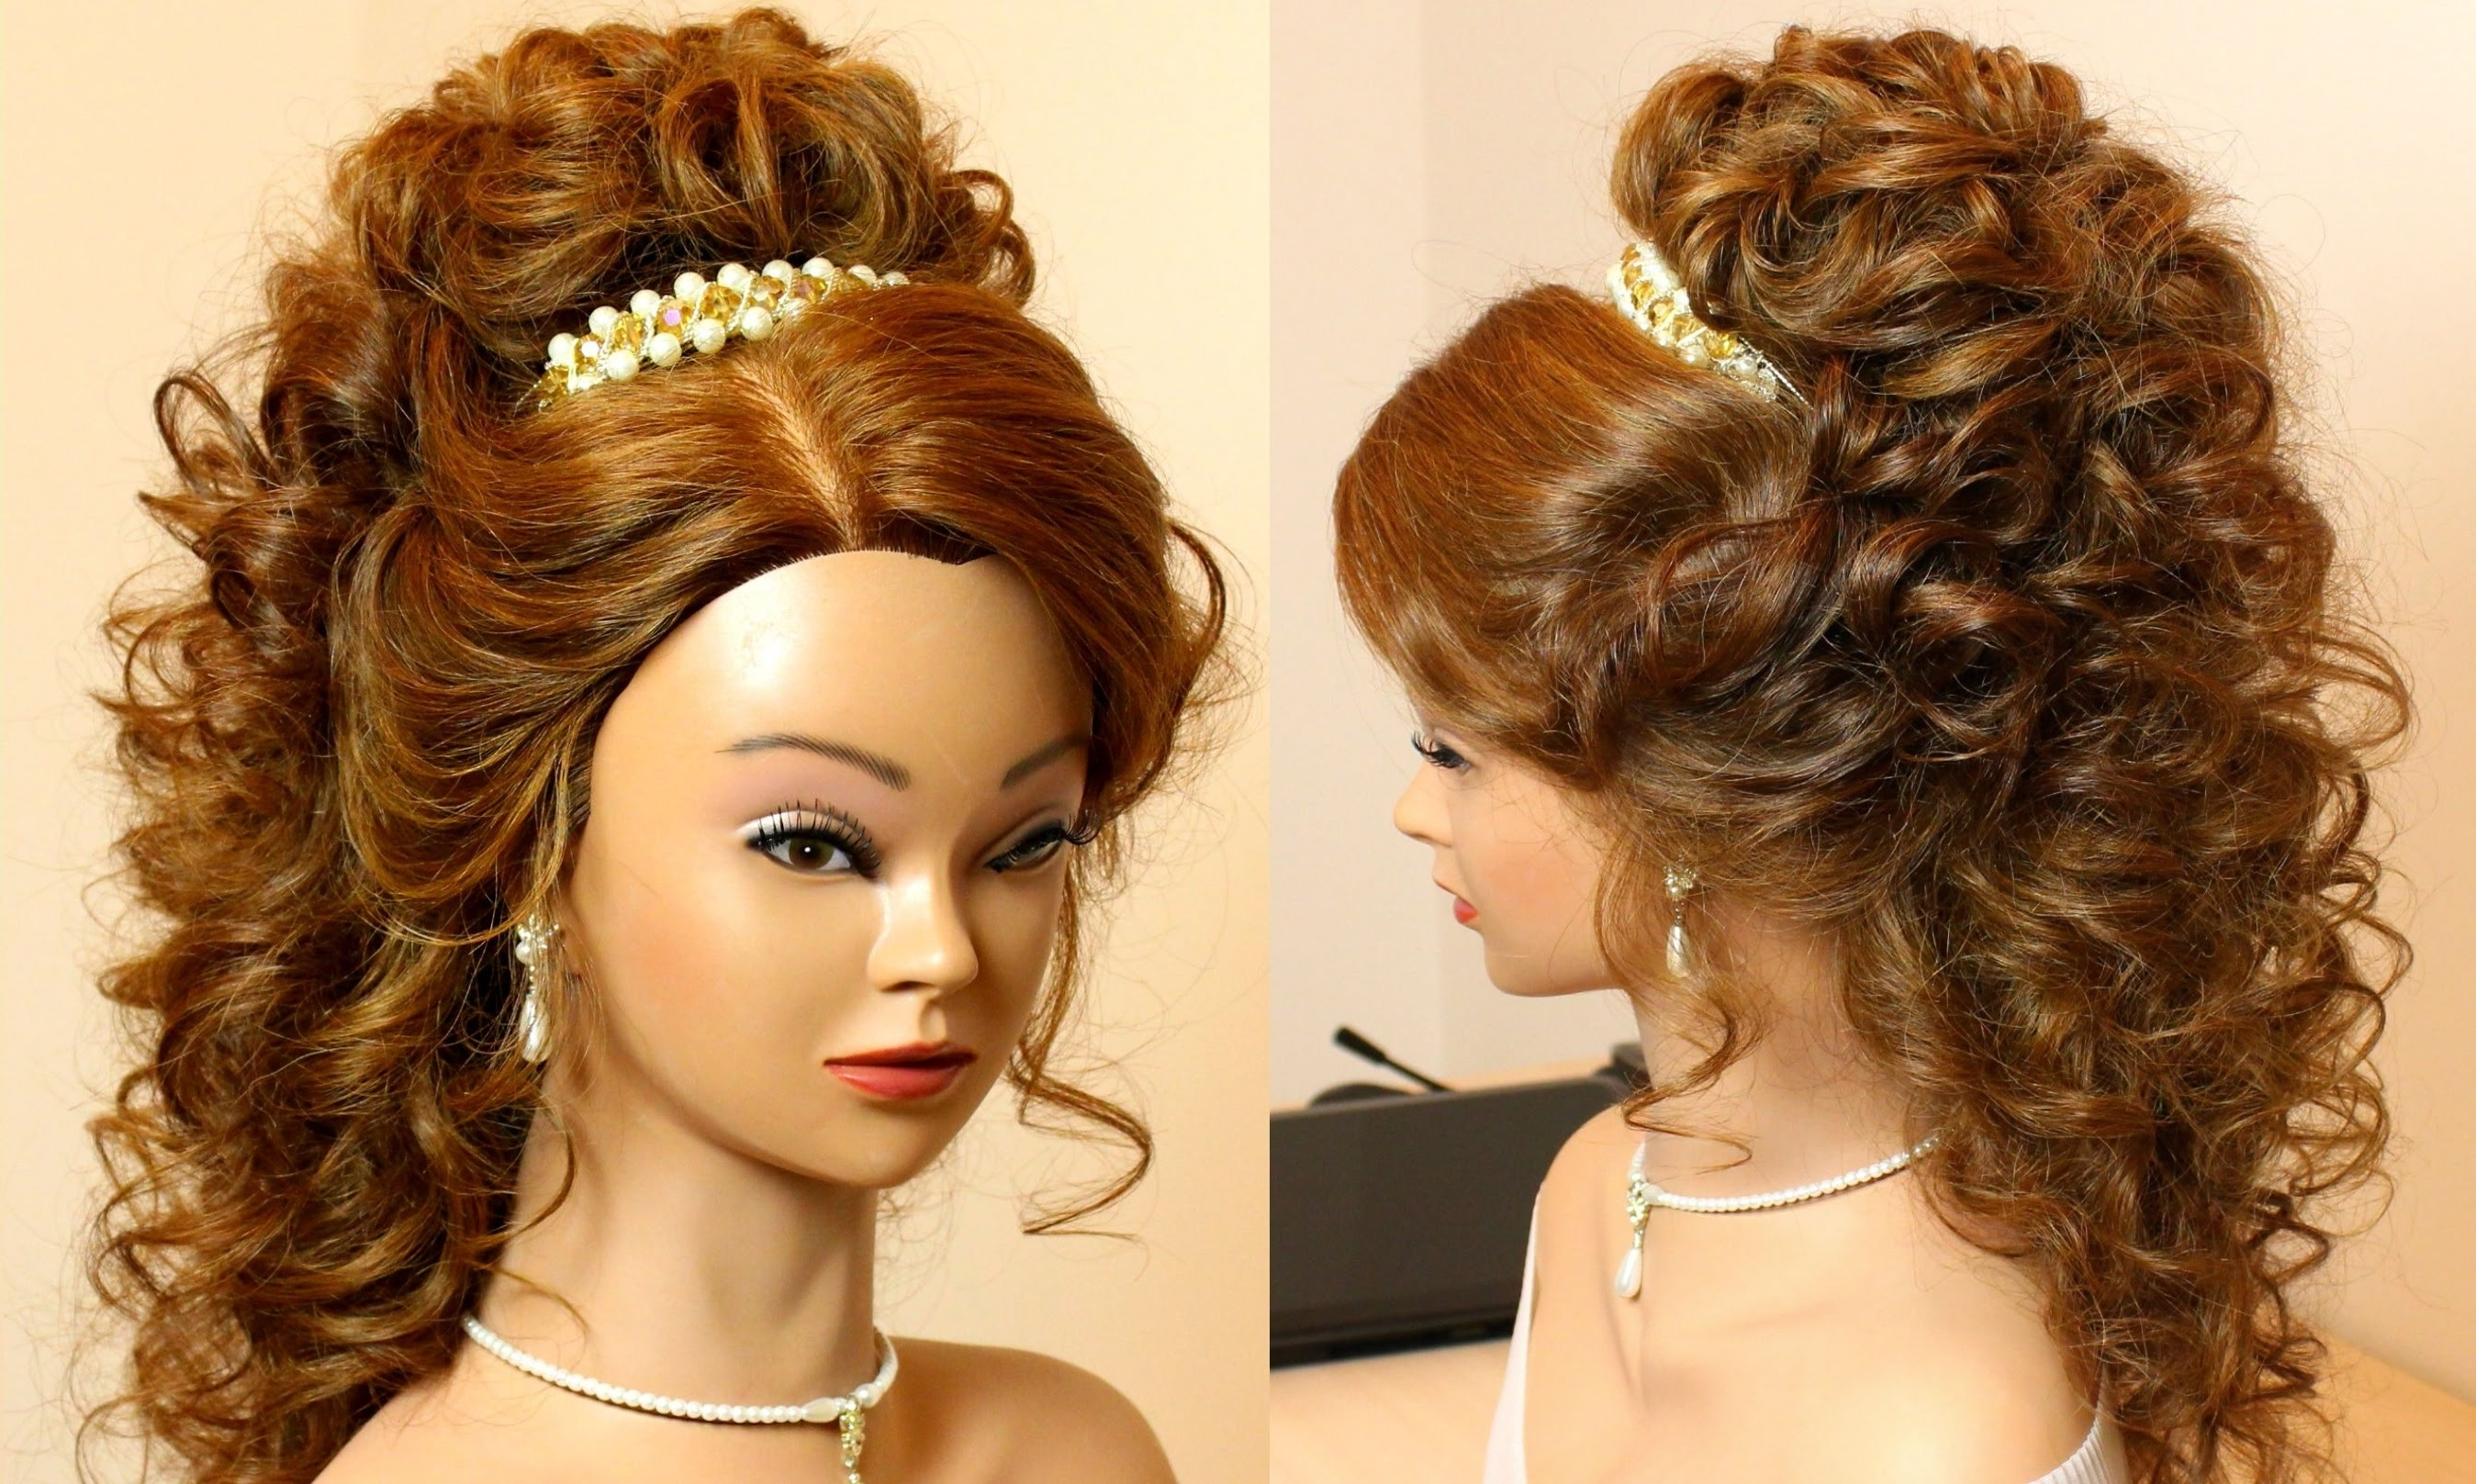 Romantic Bridal Prom Hairstyle For Long Hair Tutorial Sensational With Romantic Updo Hairstyles (View 15 of 15)